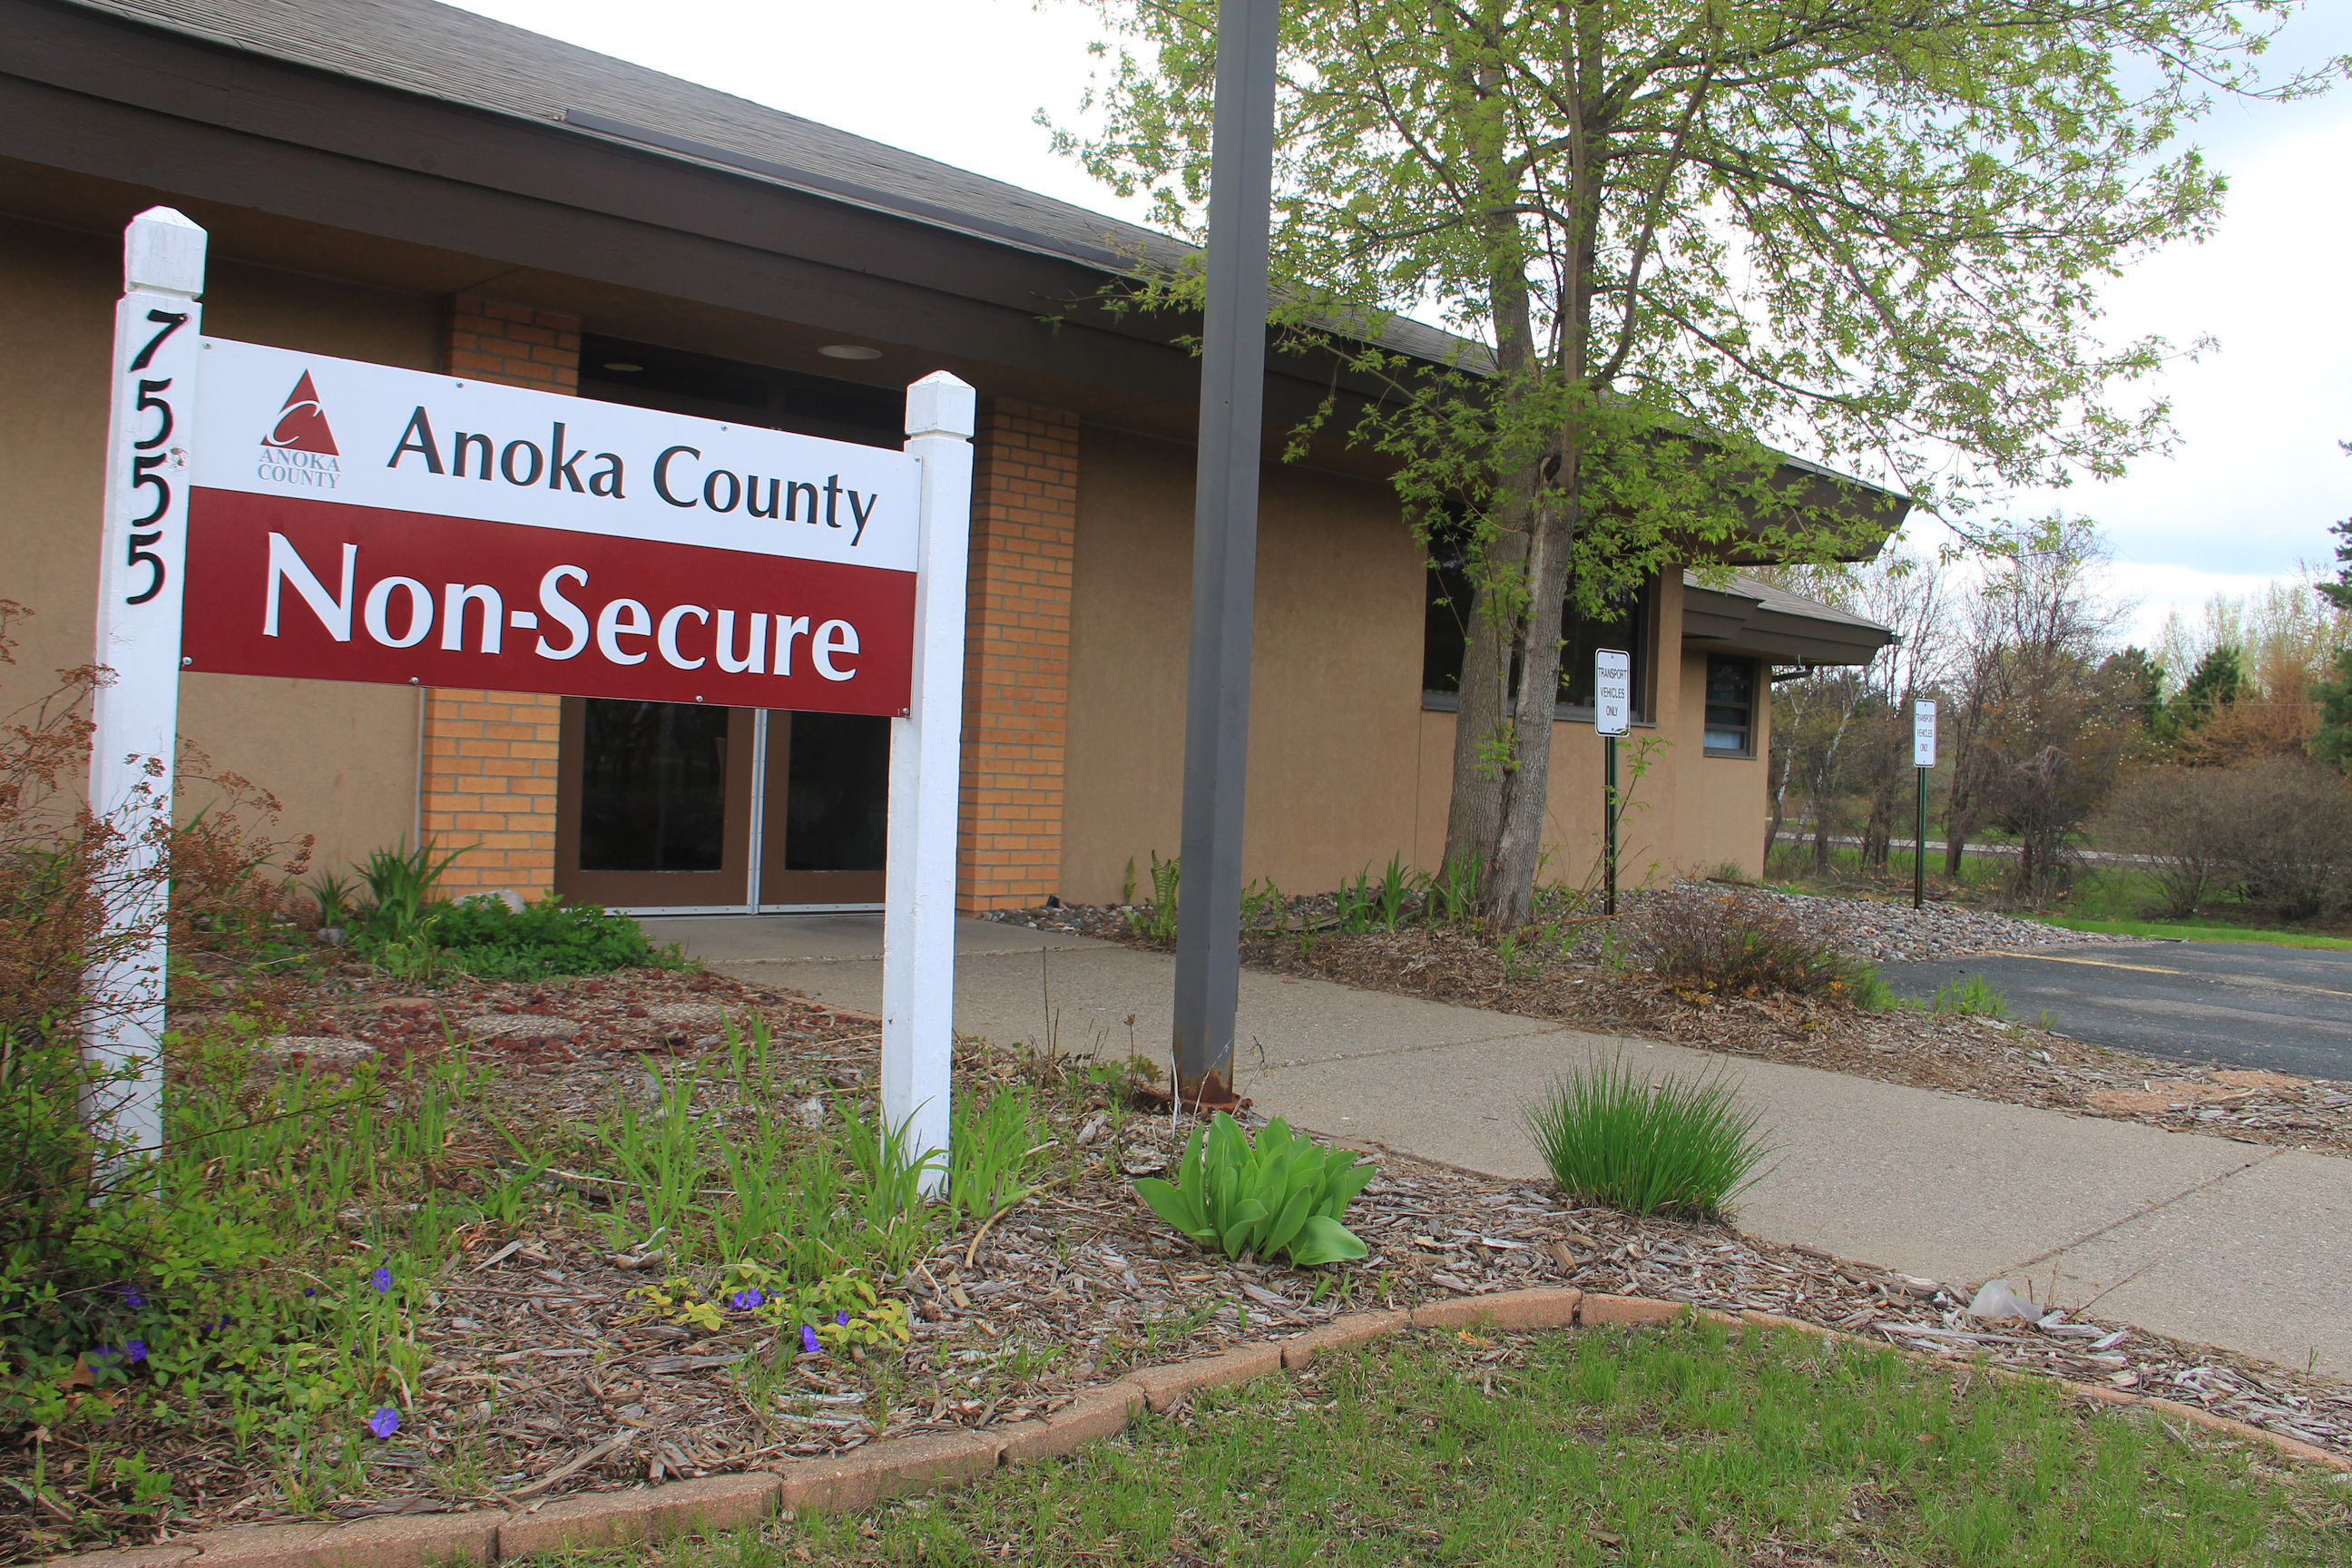 Anoka County Non-Secure Program Front Building